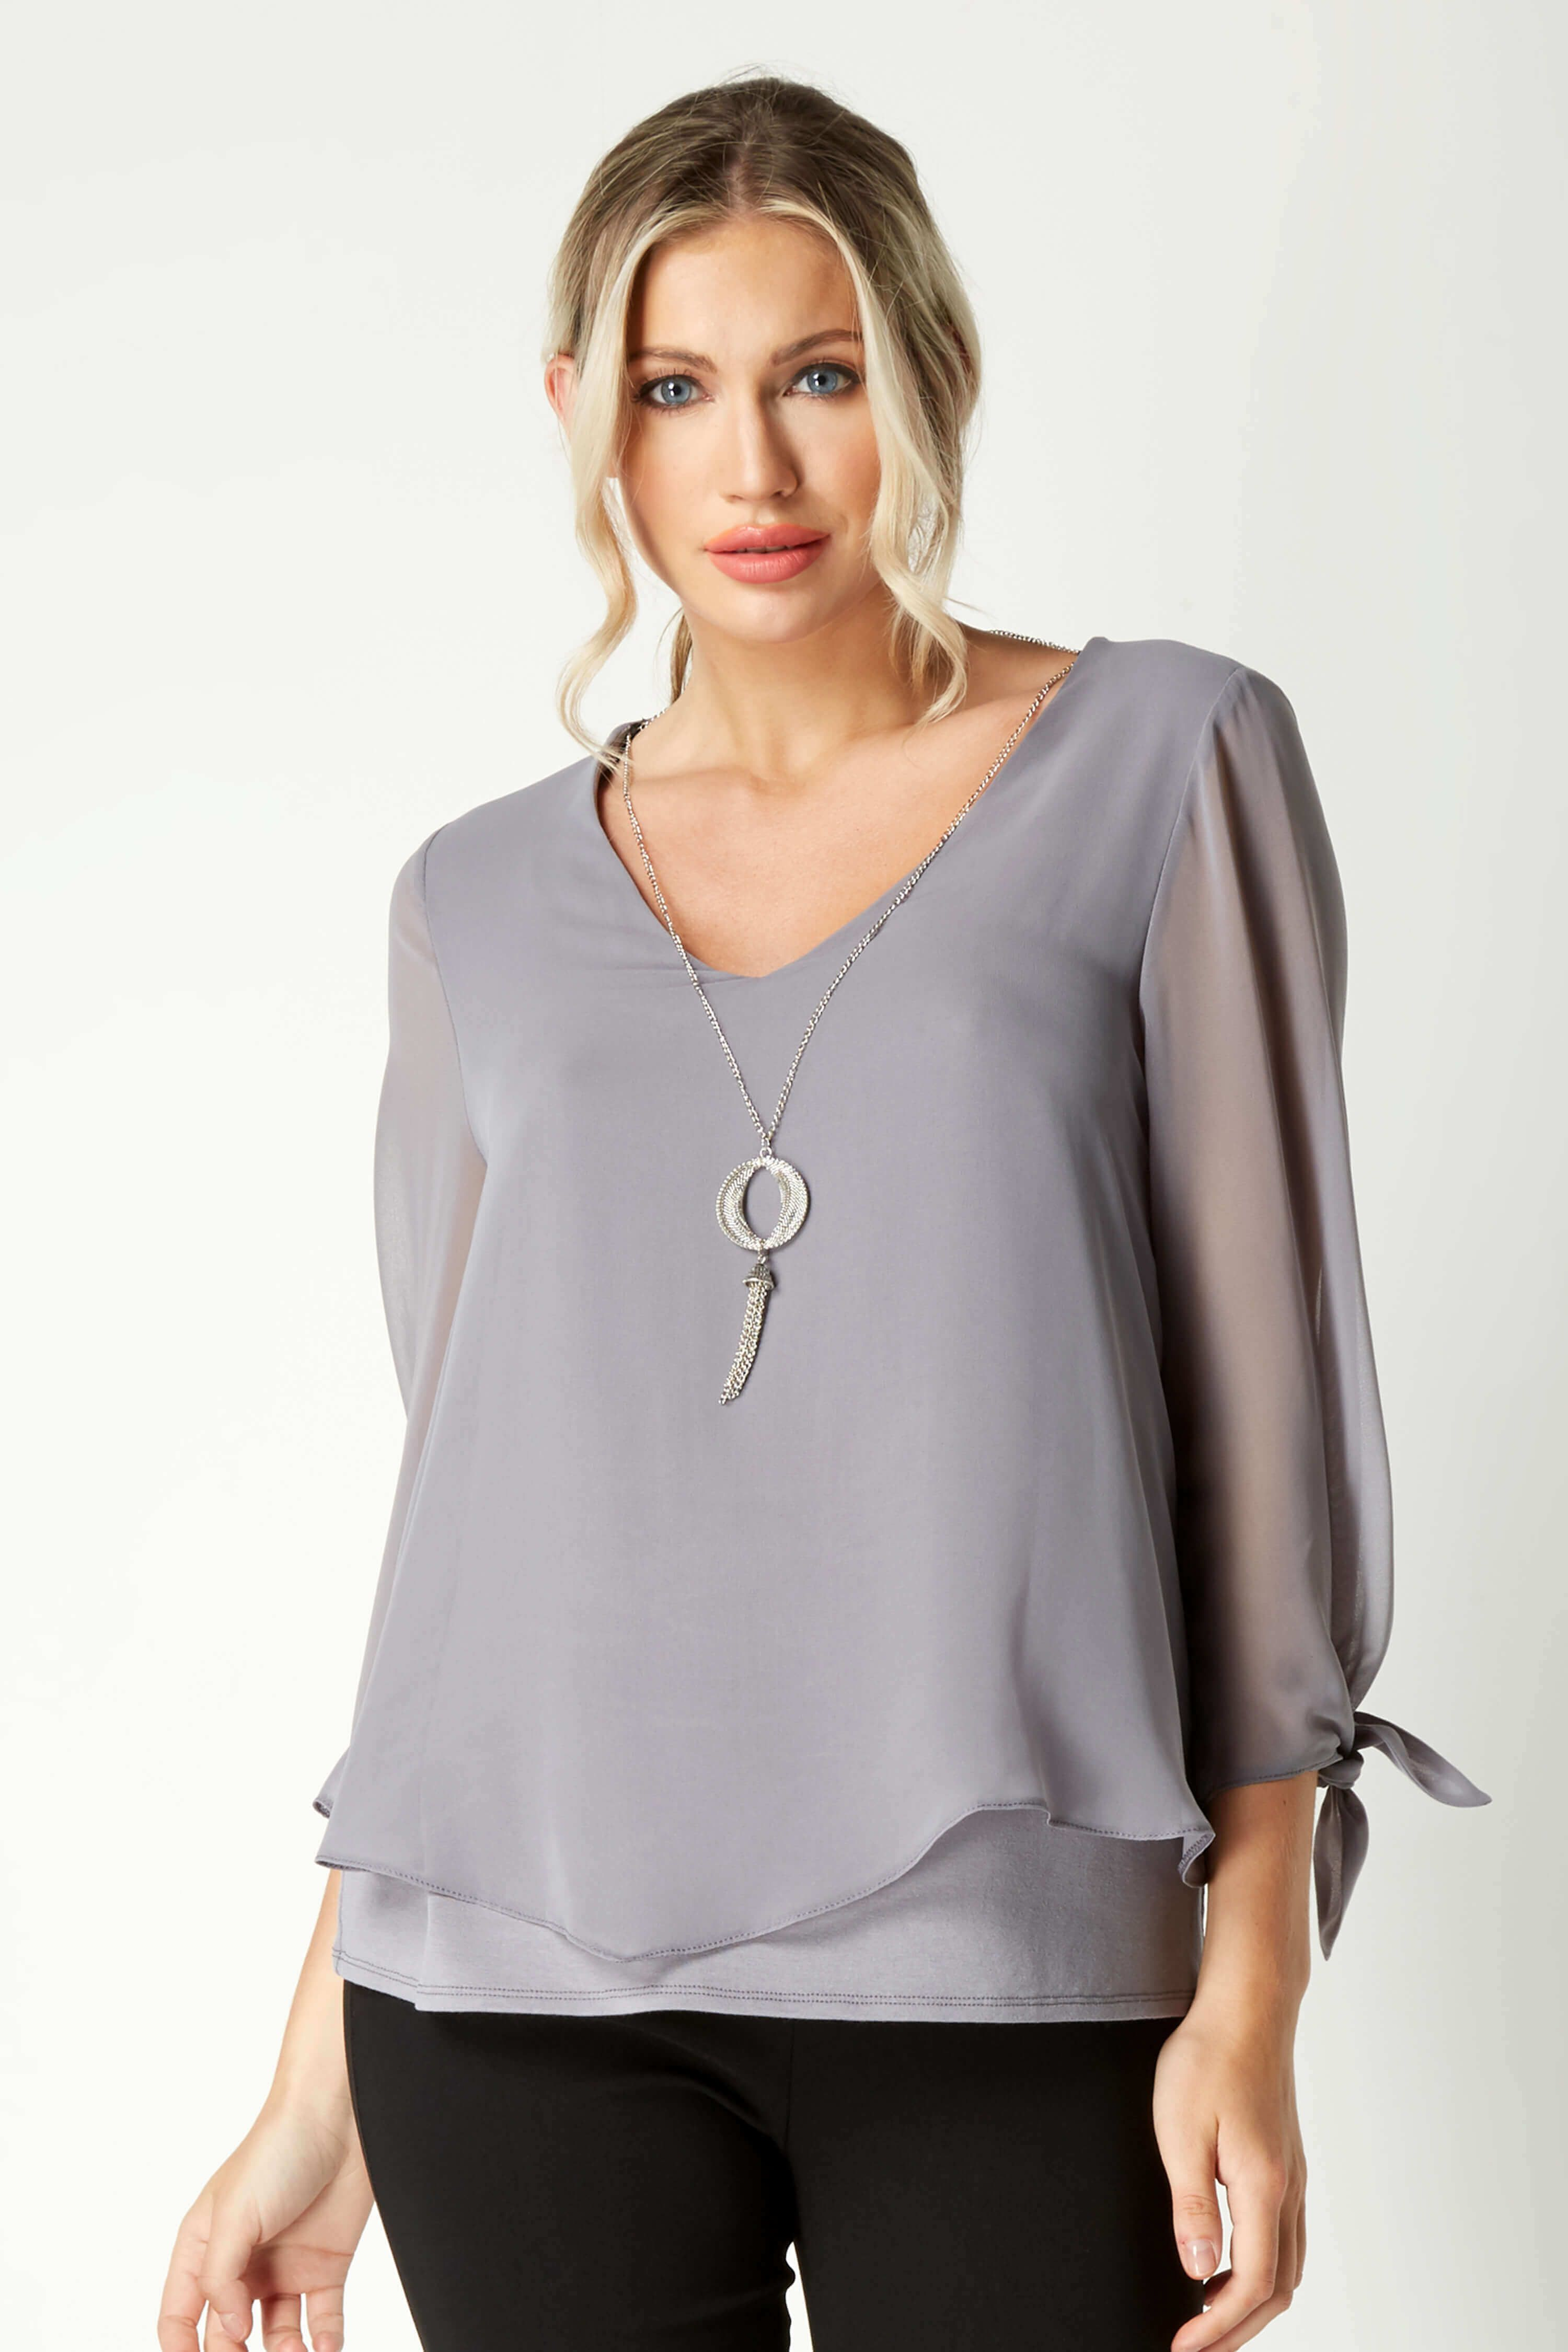 a1891d632909 Necklace Trim Sleeve Tie Top - Free UK Delivery - 10 12 14 16 18 20 - This  easy to-wear chiffon overlay top is a great everyday piece to add to your  ...